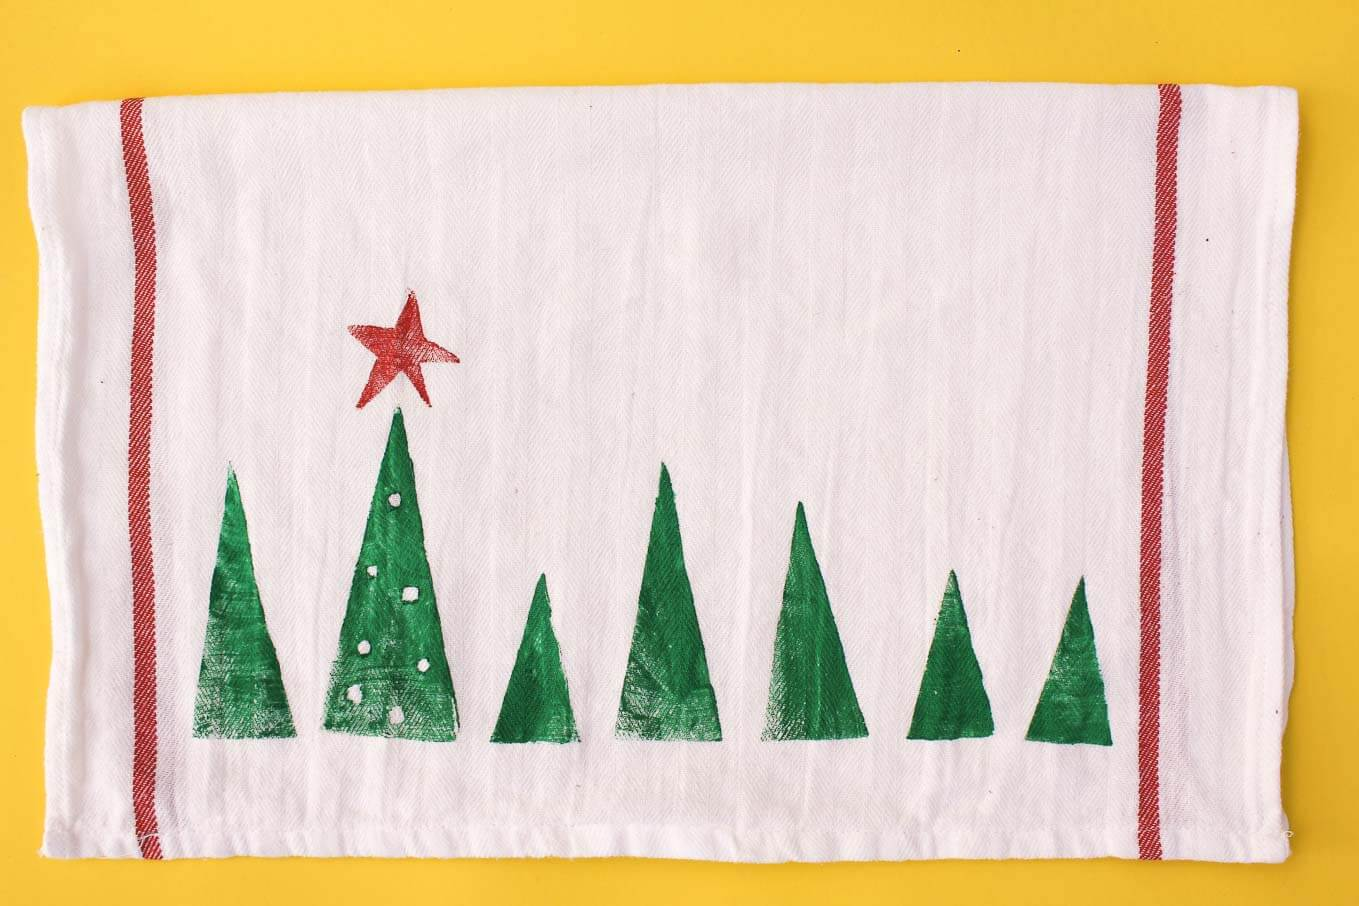 It's not easy finding Christmas crafts for toddlers but these DIY Christmas crafts look like they'll work out just fine.